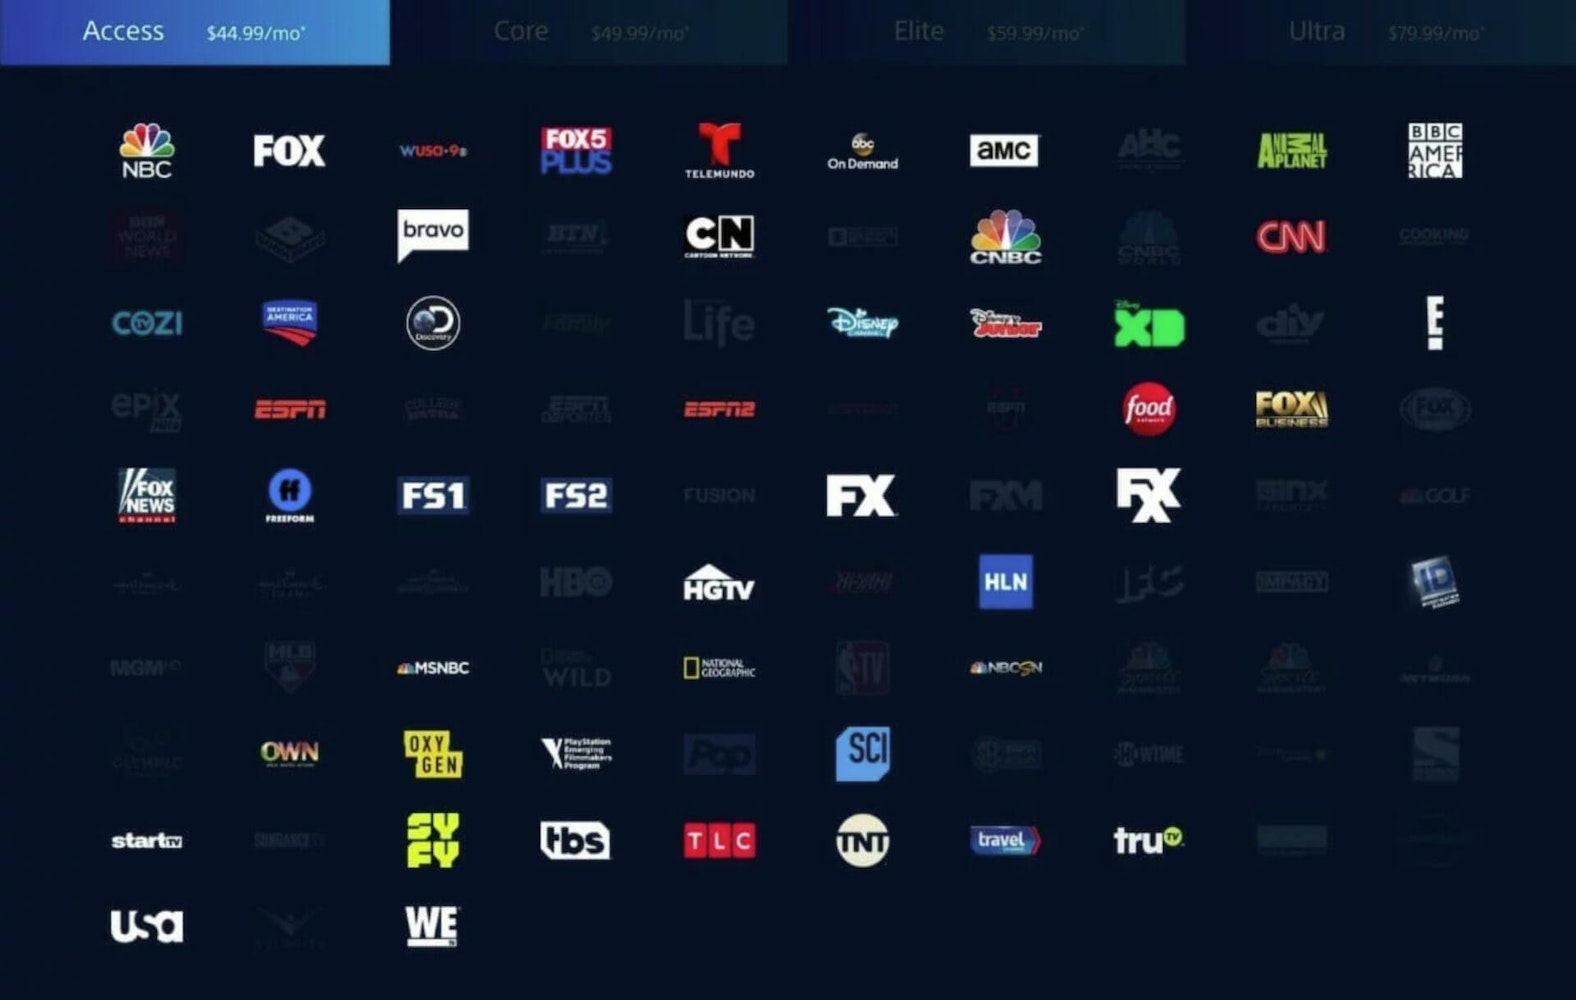 eagles packers playstation vue streaming NFL FOX